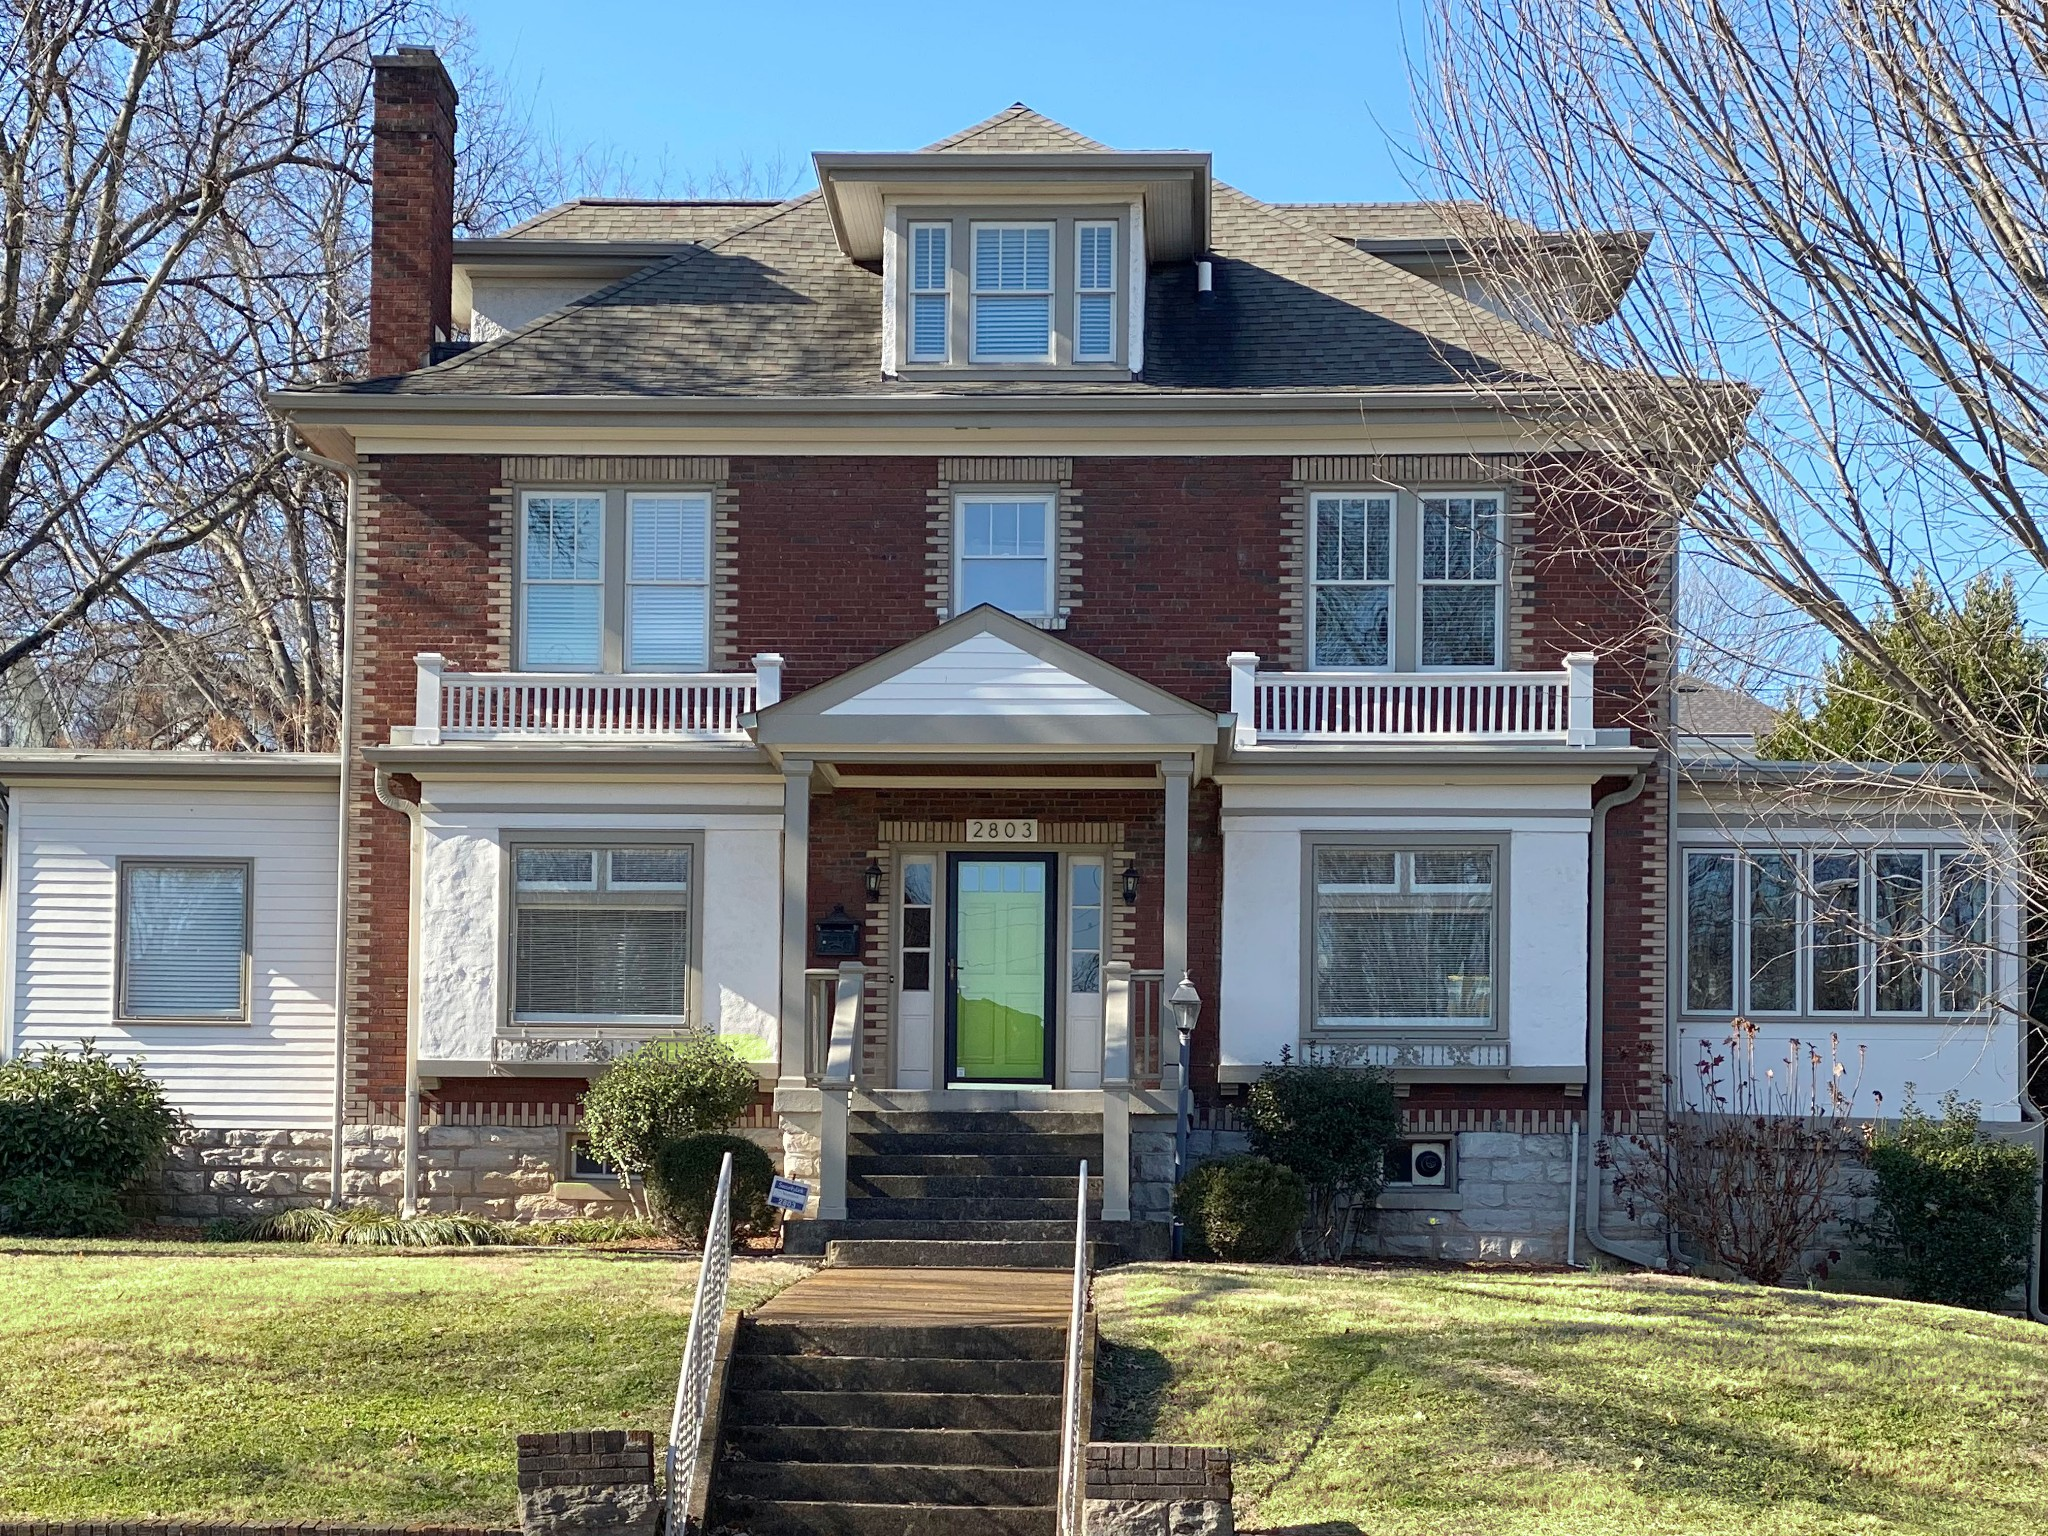 A RARE OPPORTUNITY To Own A Belmont Blvd Classic Four Square! Major Kitchen And Bathroom Renovations*Main Level Renovation To The Studs* Open Floor Plan*Perfect For Entertaining.*Style Defining Woodwork, Trim And Gorgeous Hardwoods Throughout.* Limestone Fireplace *Custom Lighting *Screened In Porch*Detached Garage with Parking Pad* Located In Heart Of Belmont Blvd With Sidewalks, 12 South Shops And Parks Nearby